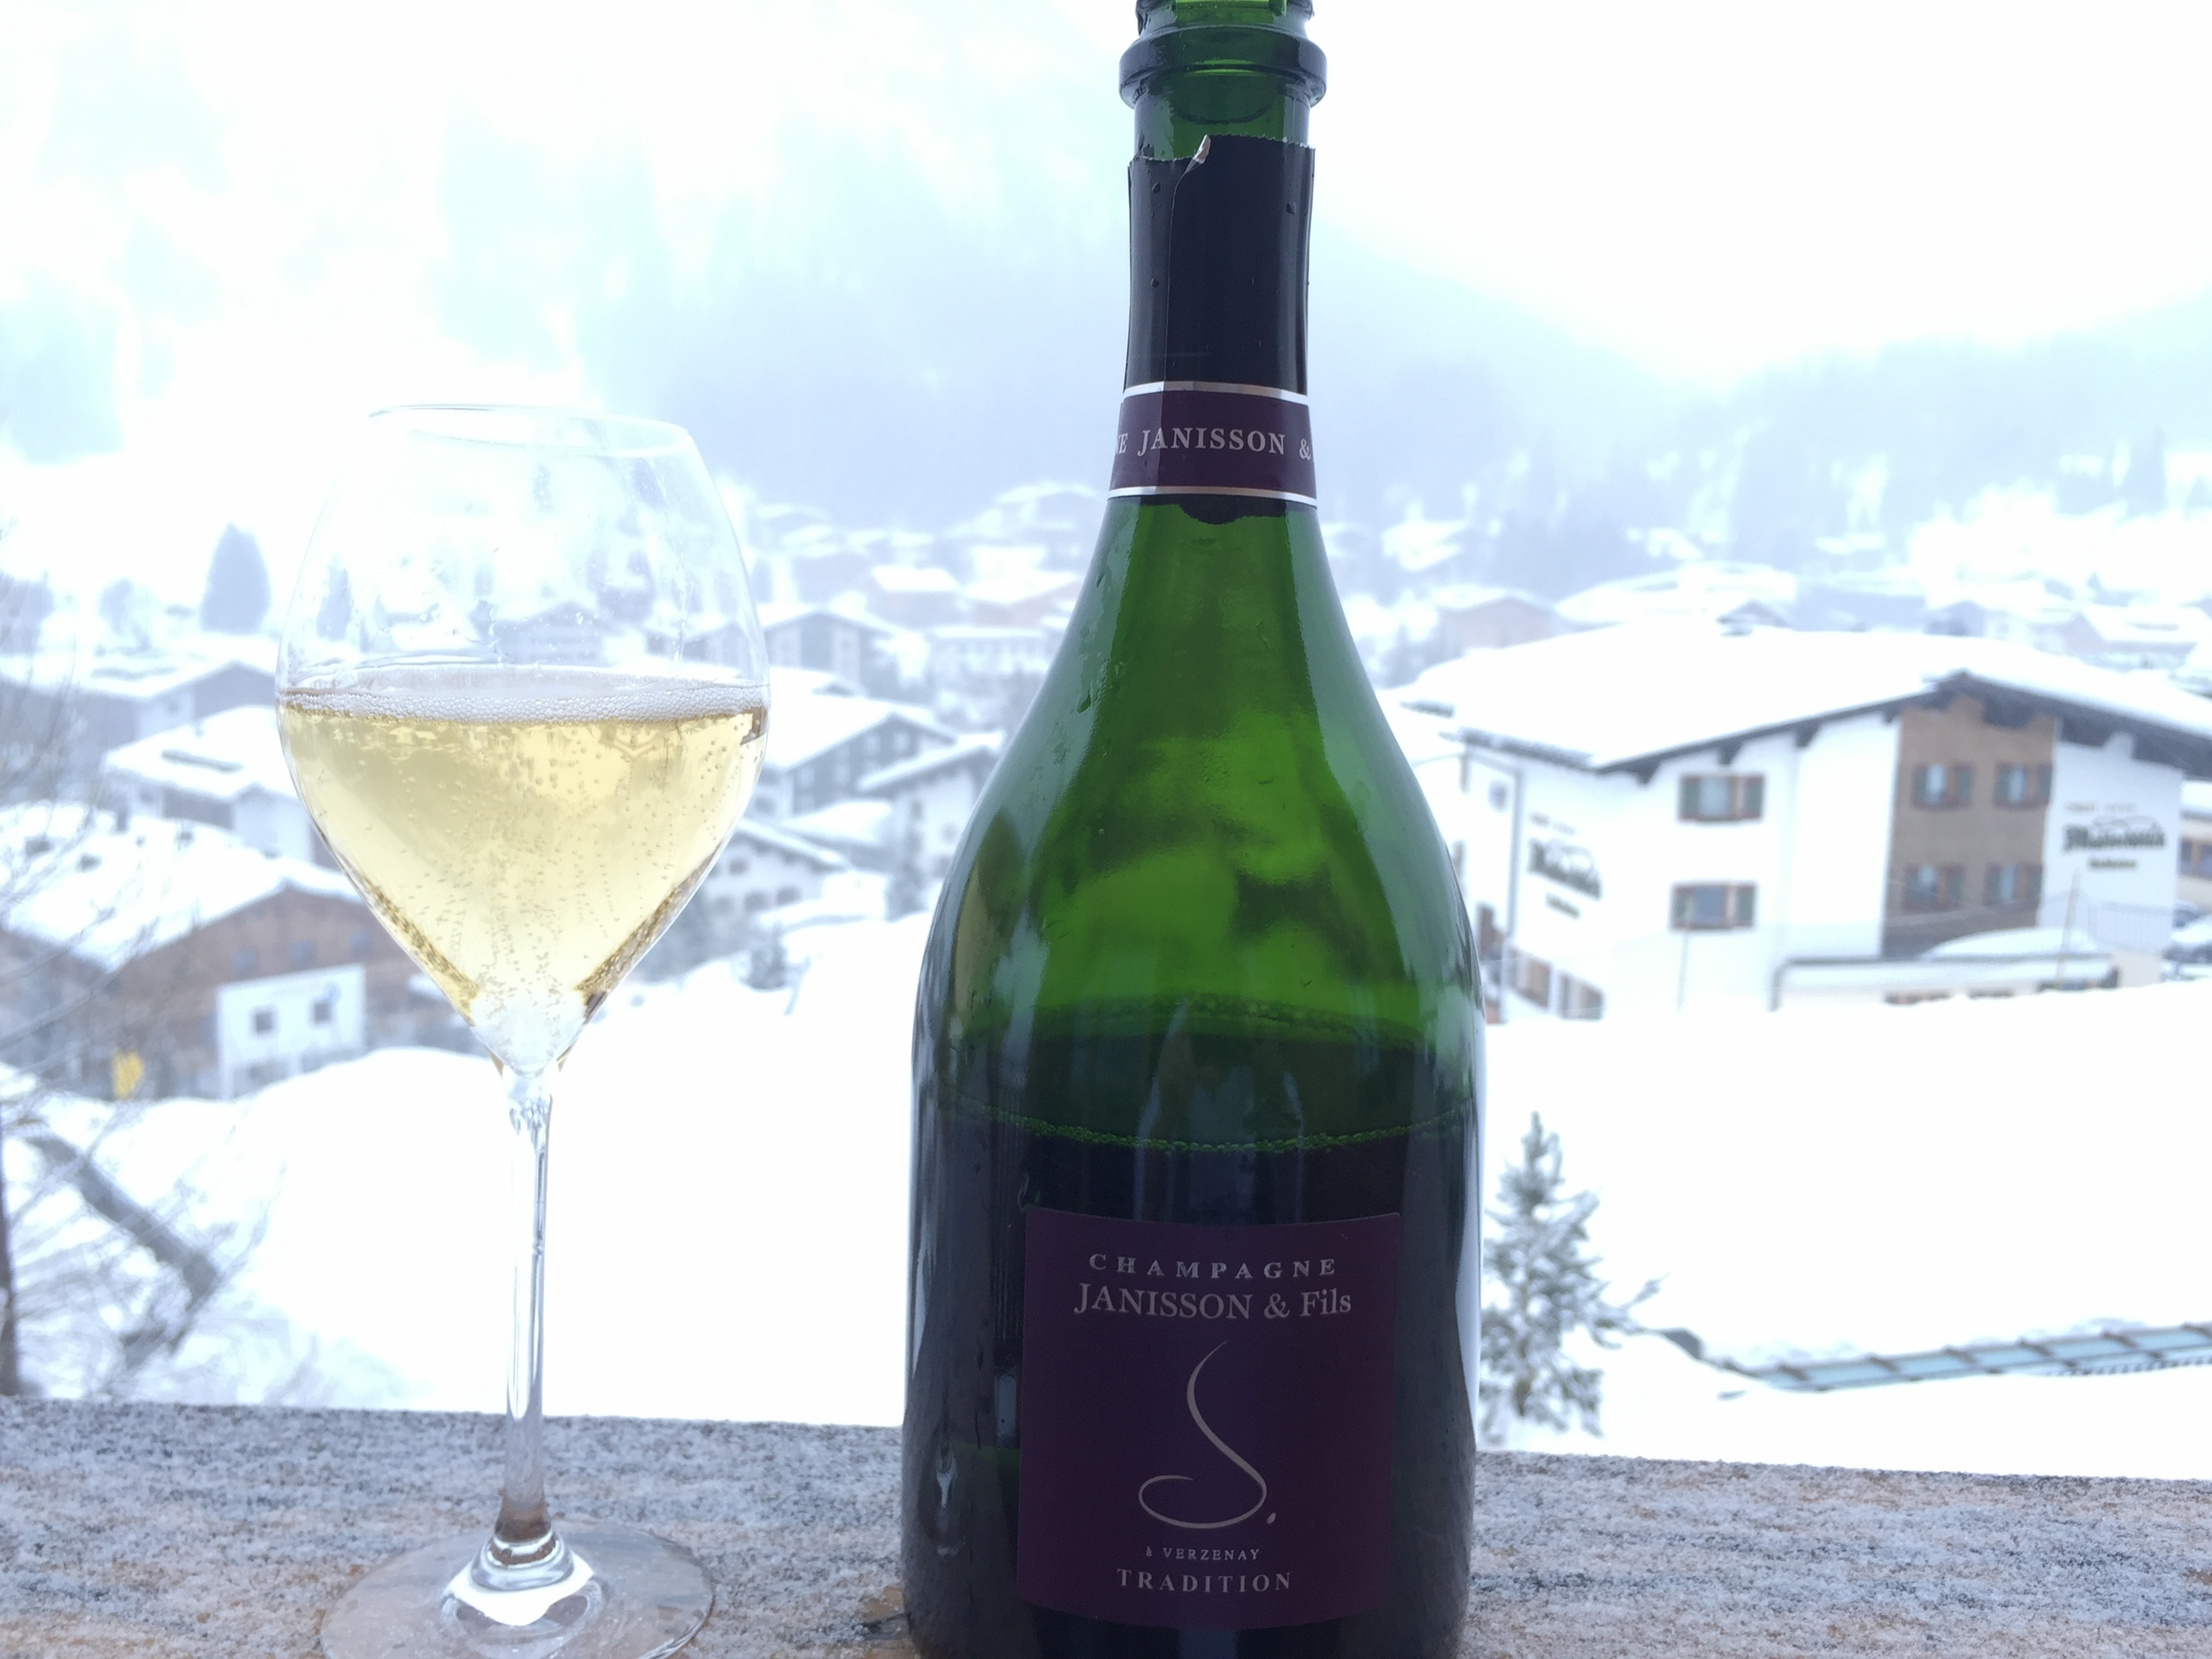 The expensive Aurelio Lech and a bottle of Janisson Brut Traditional - Degustation at its best!